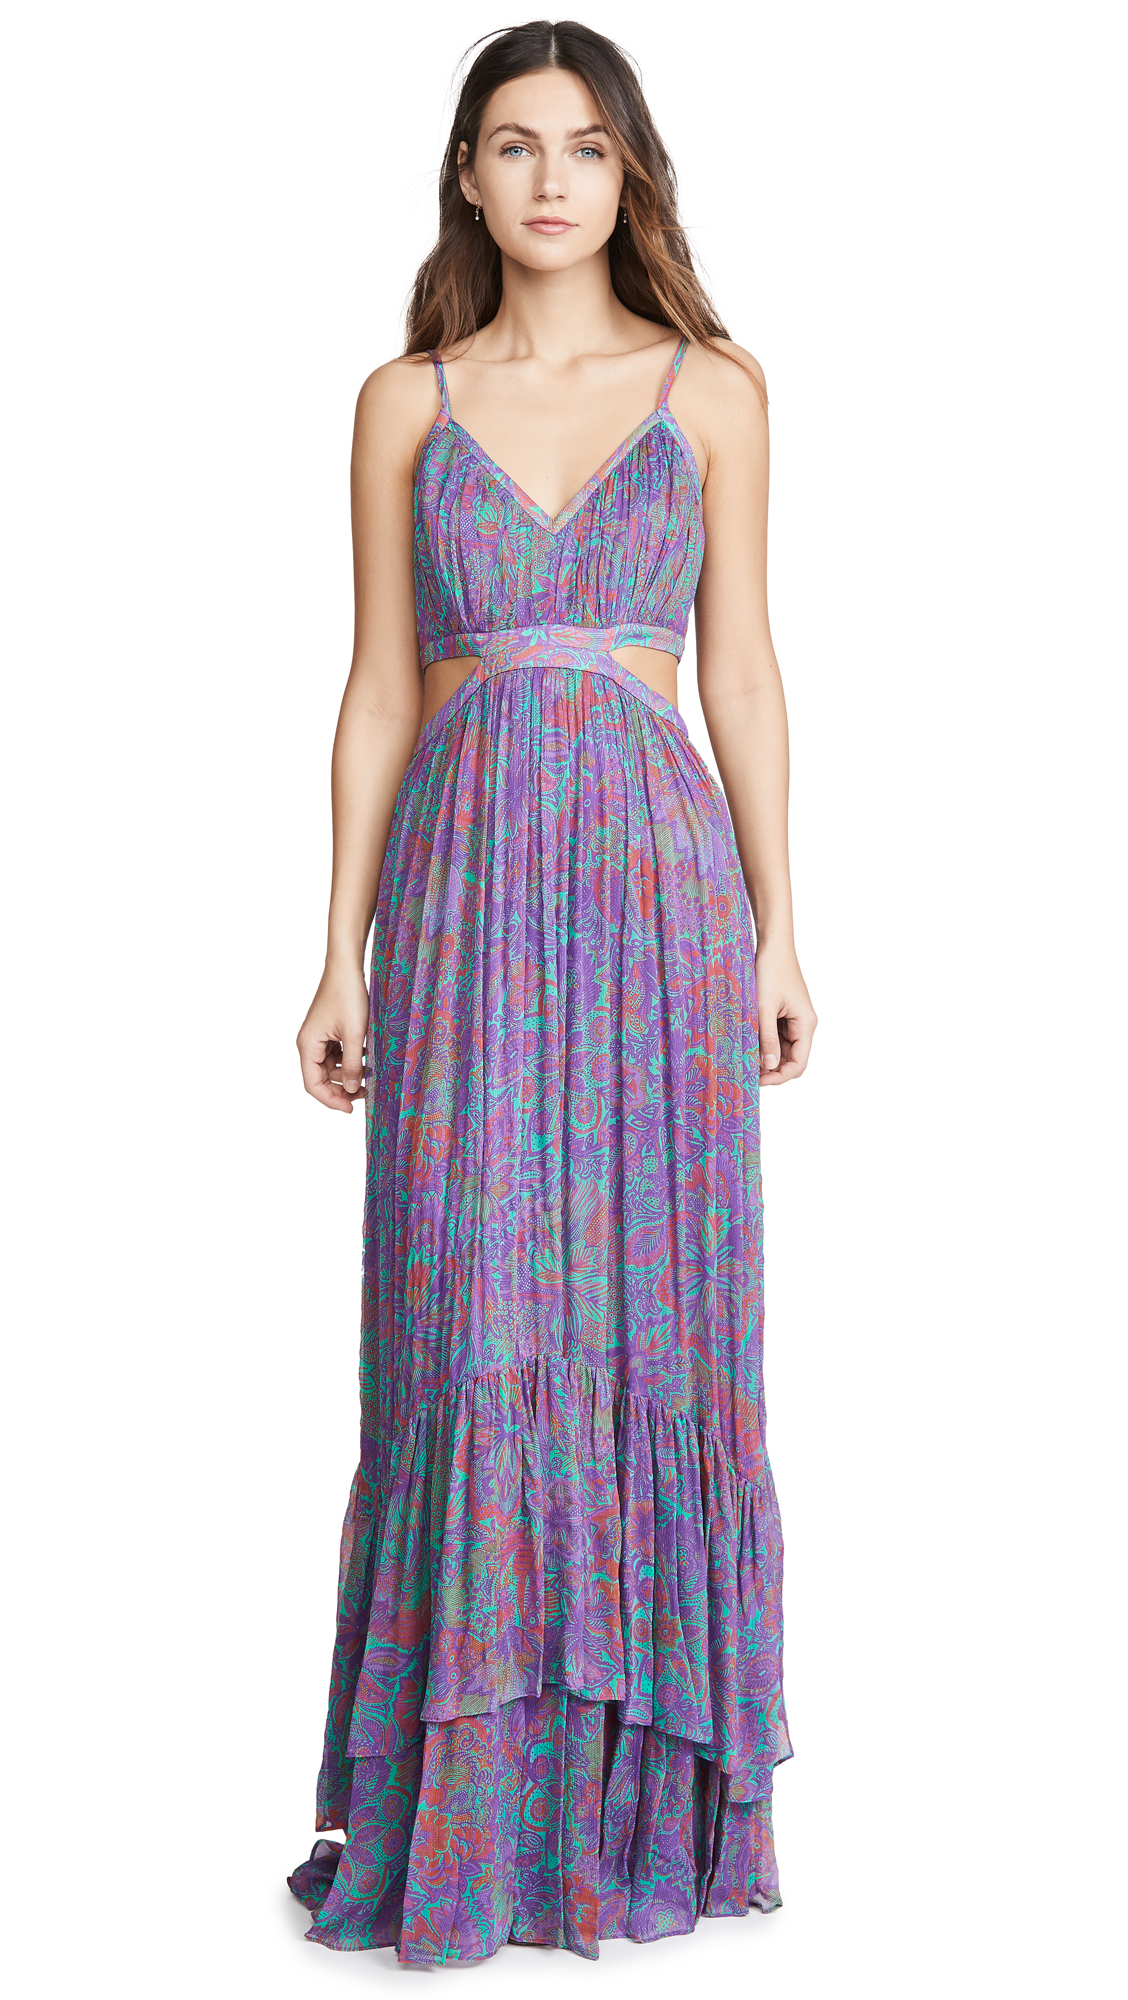 Ramy Brook Printed Marley Dress - 30% Off Sale